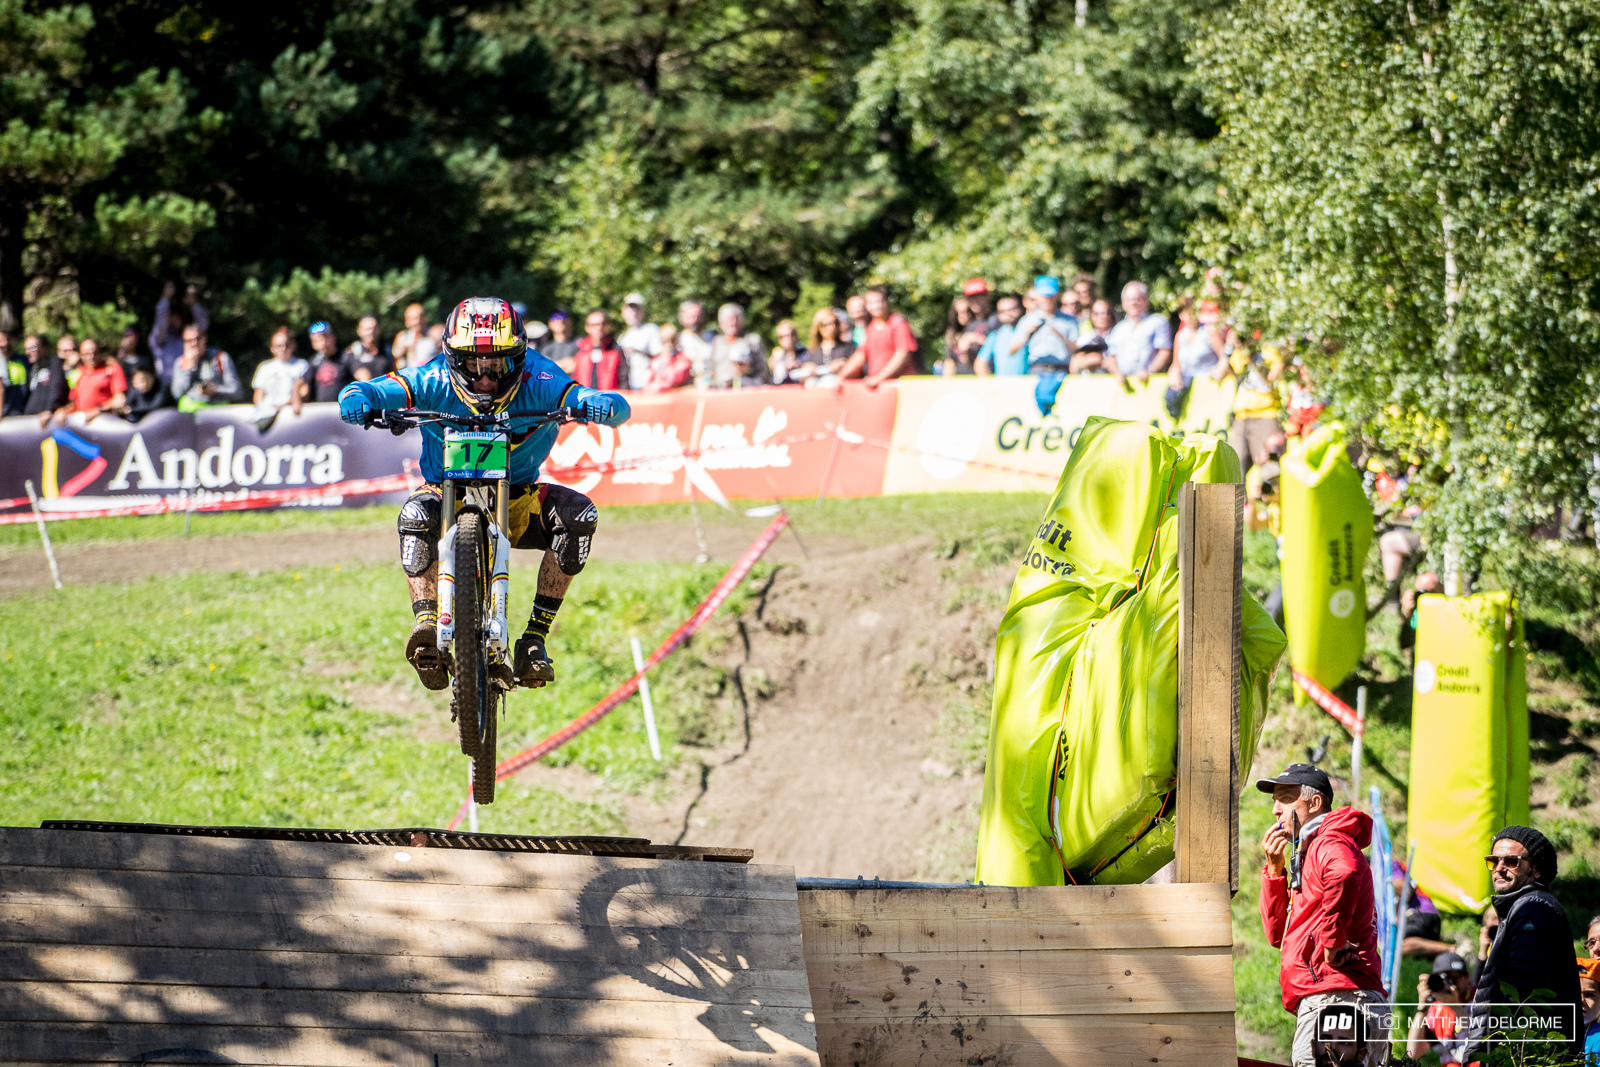 Martin Maes was clearly the big threat. He came threw six seconds up but it wasn t enough for the win. Maes finished second.